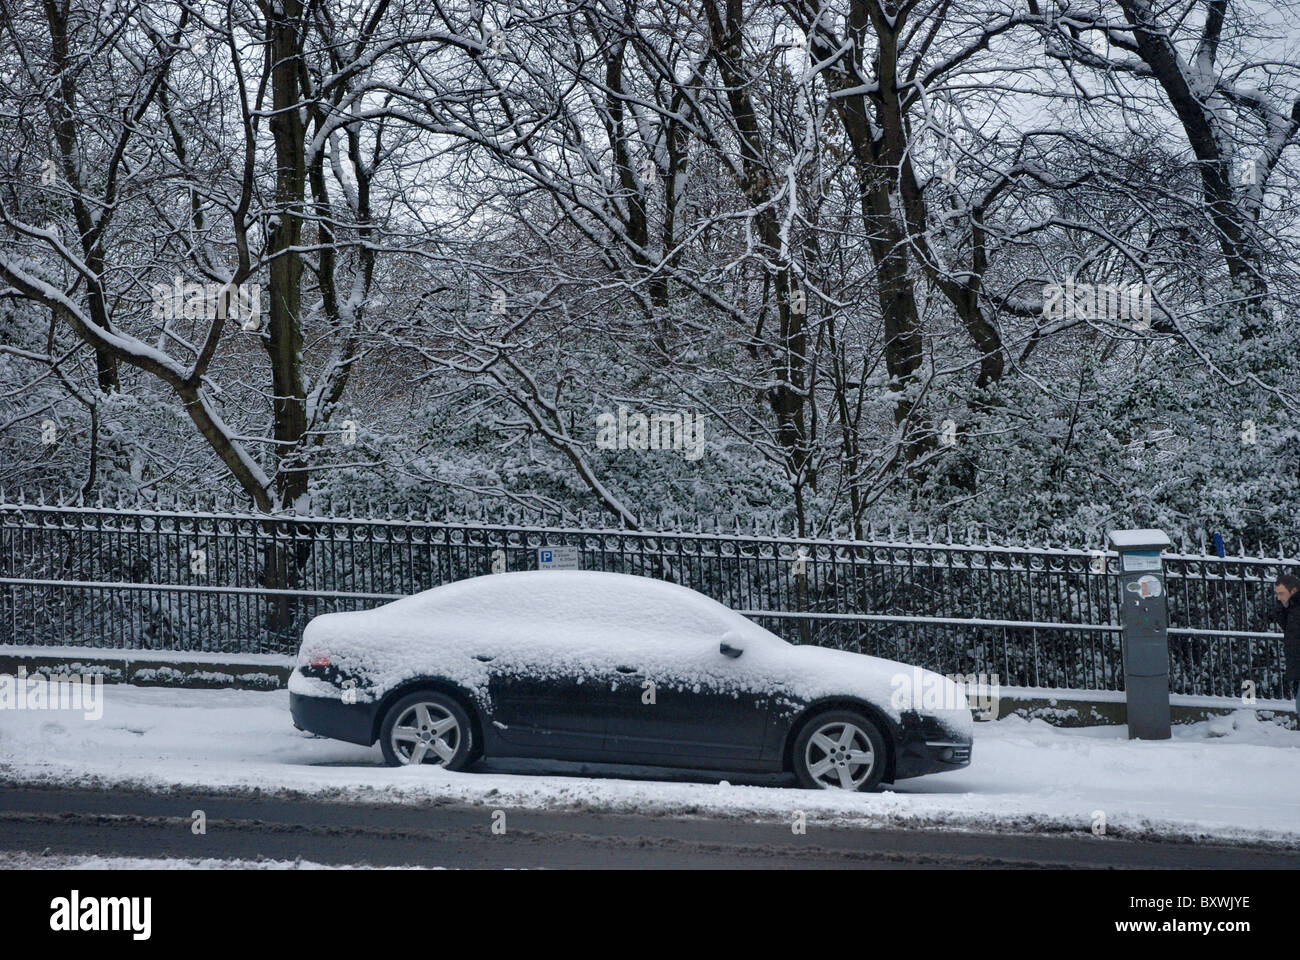 A parked car covered in snow in Edinburgh's New Town - Stock Image